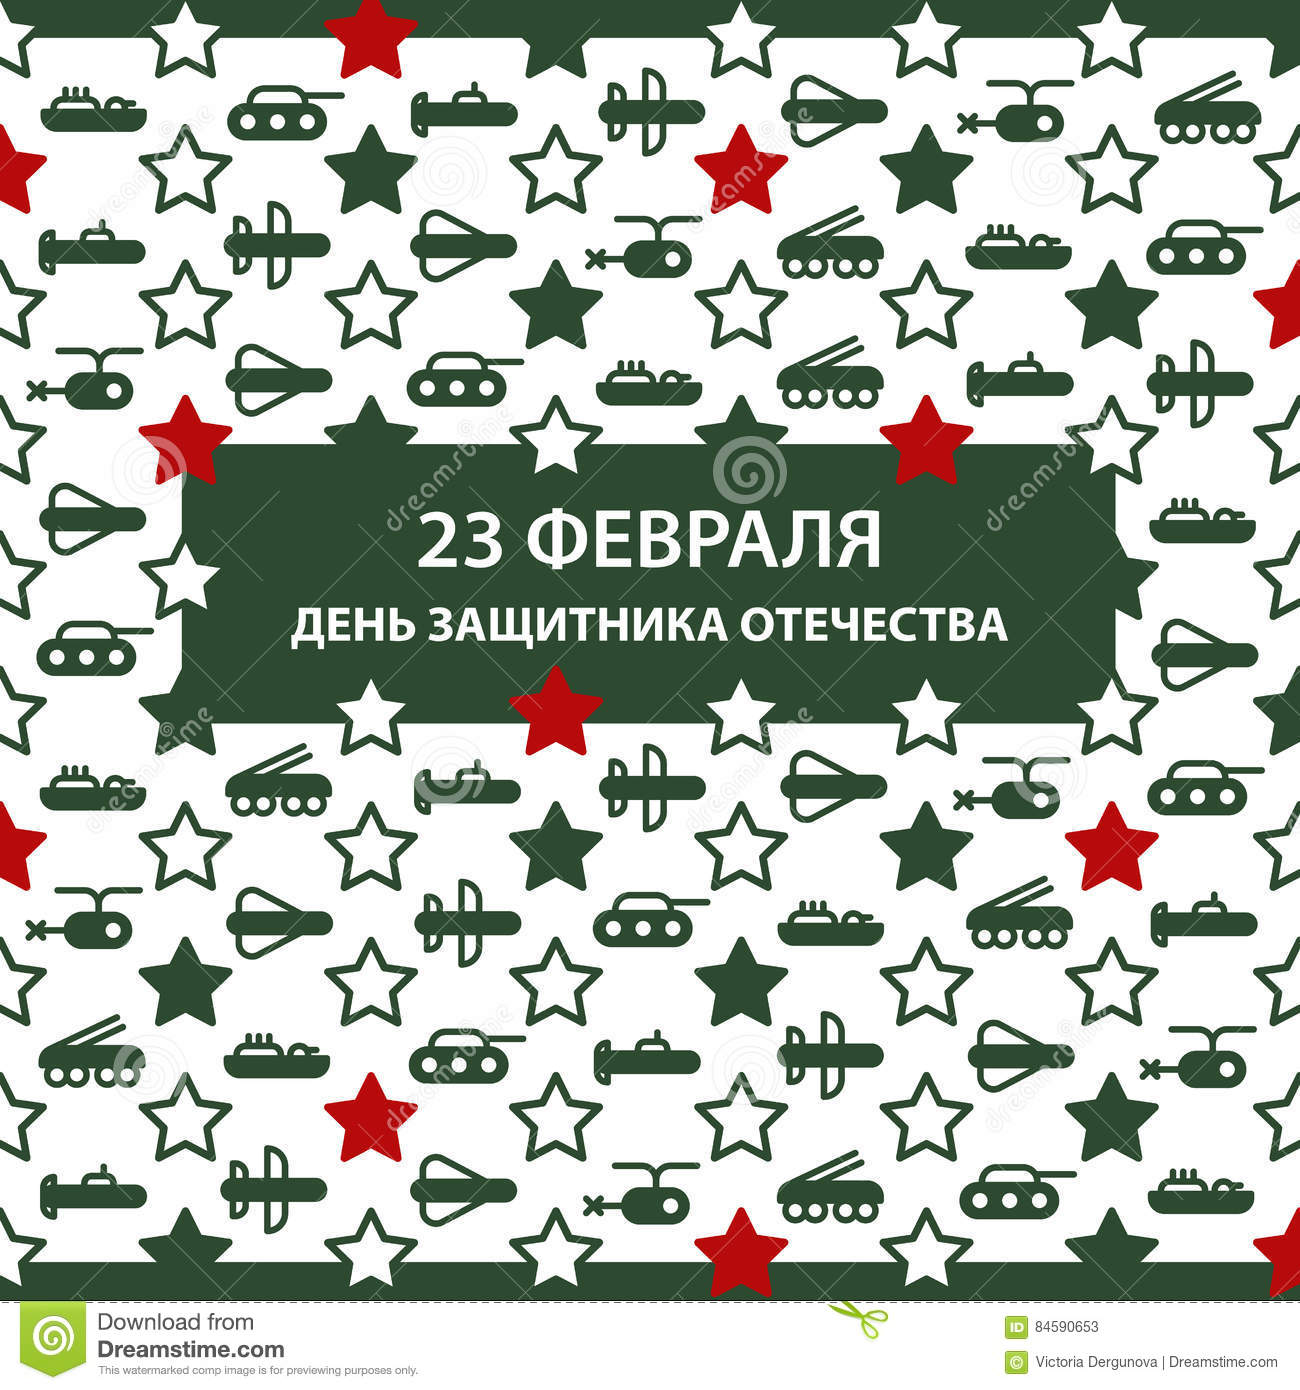 Greeting Card With Moving Green Military Technics Flat Icons And Red